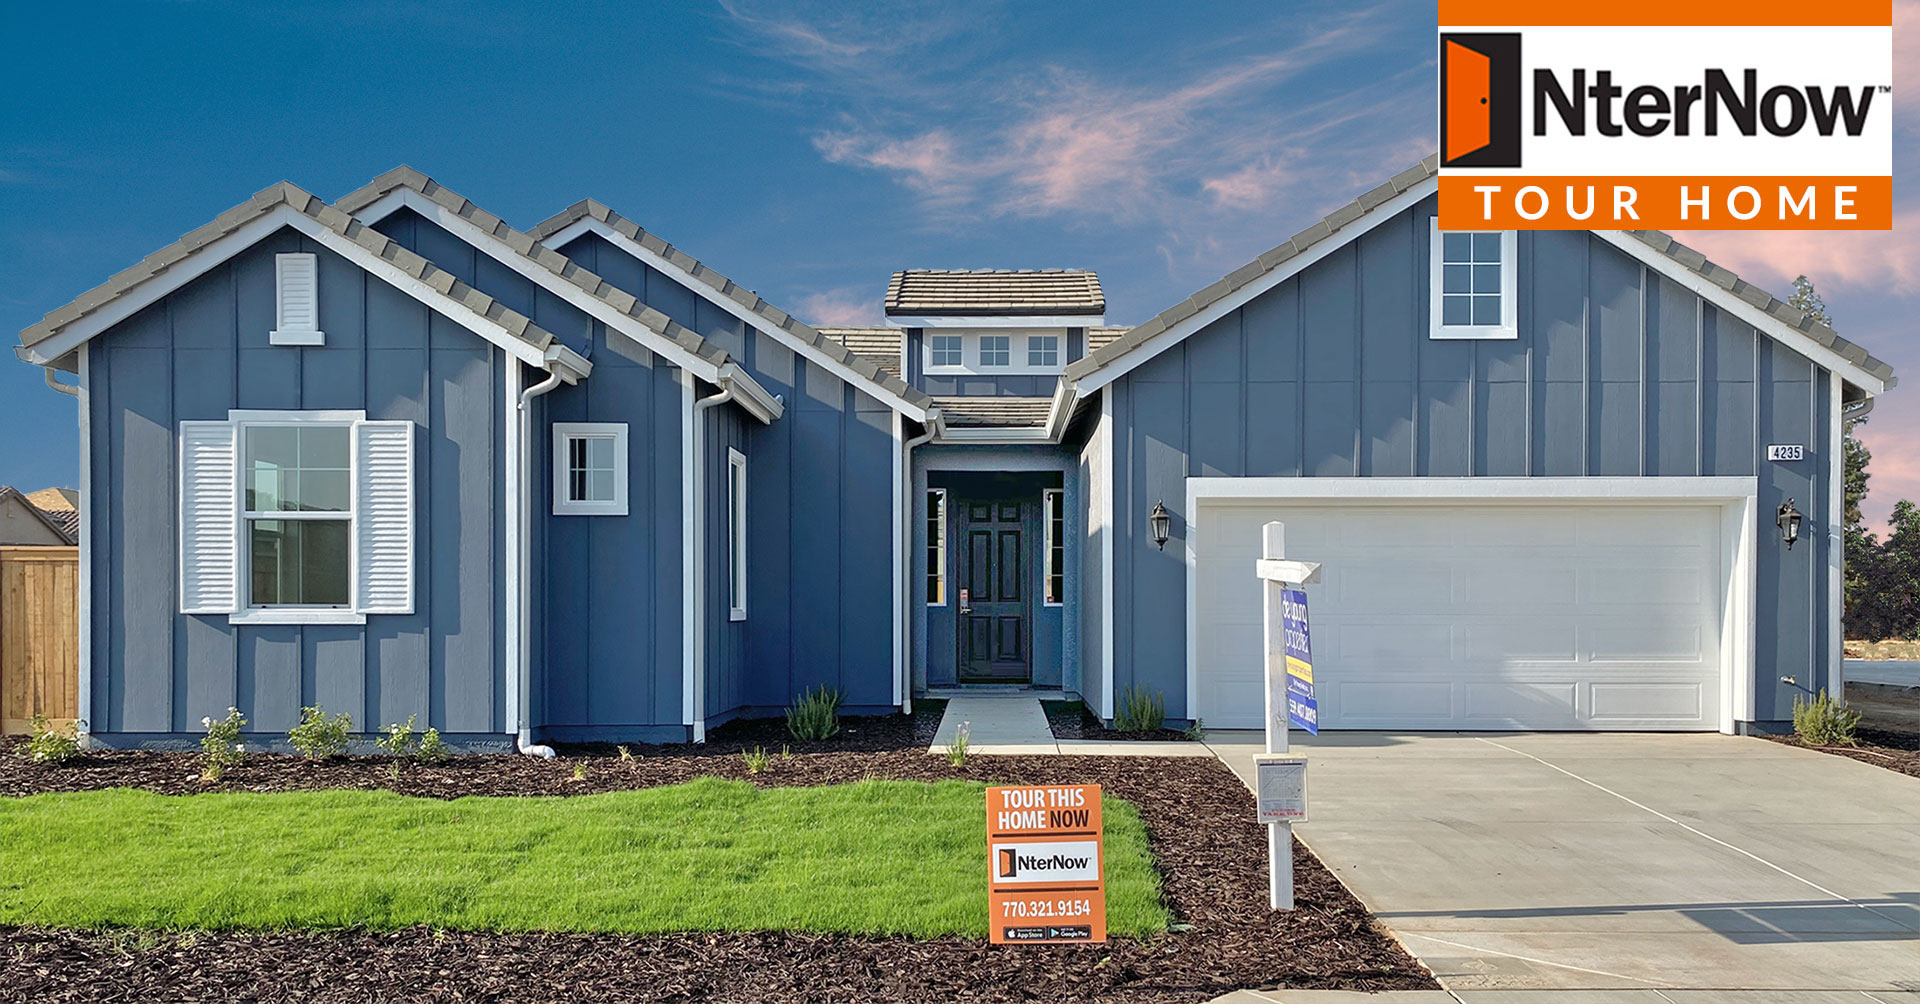 Move-In Ready Home With Interest Rate As Low As 2.625% With 20% Down At 2.647% APR – Don't Miss Out!